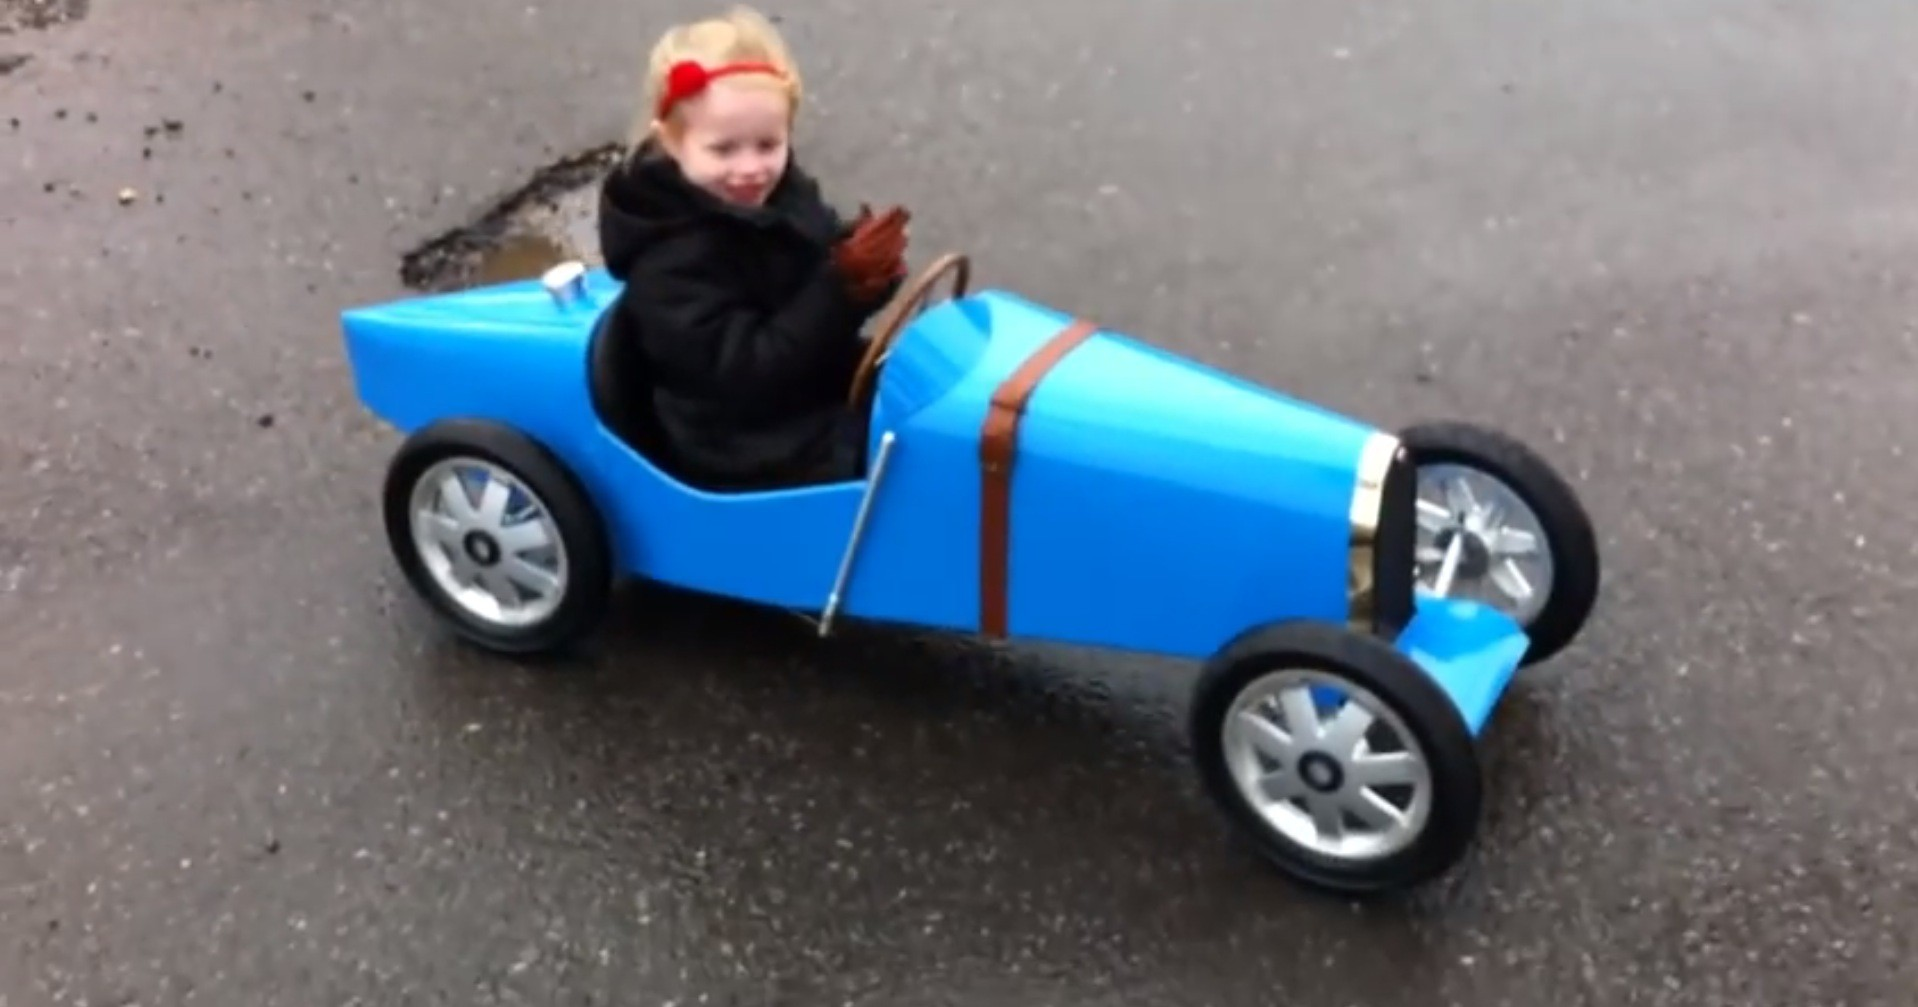 https://s1.cdn.autoevolution.com/images/news/gallery/man-build-scale-shelby-cobra-ferrari-250-gto-for-his-daughter-scarlett-video_4.jpg